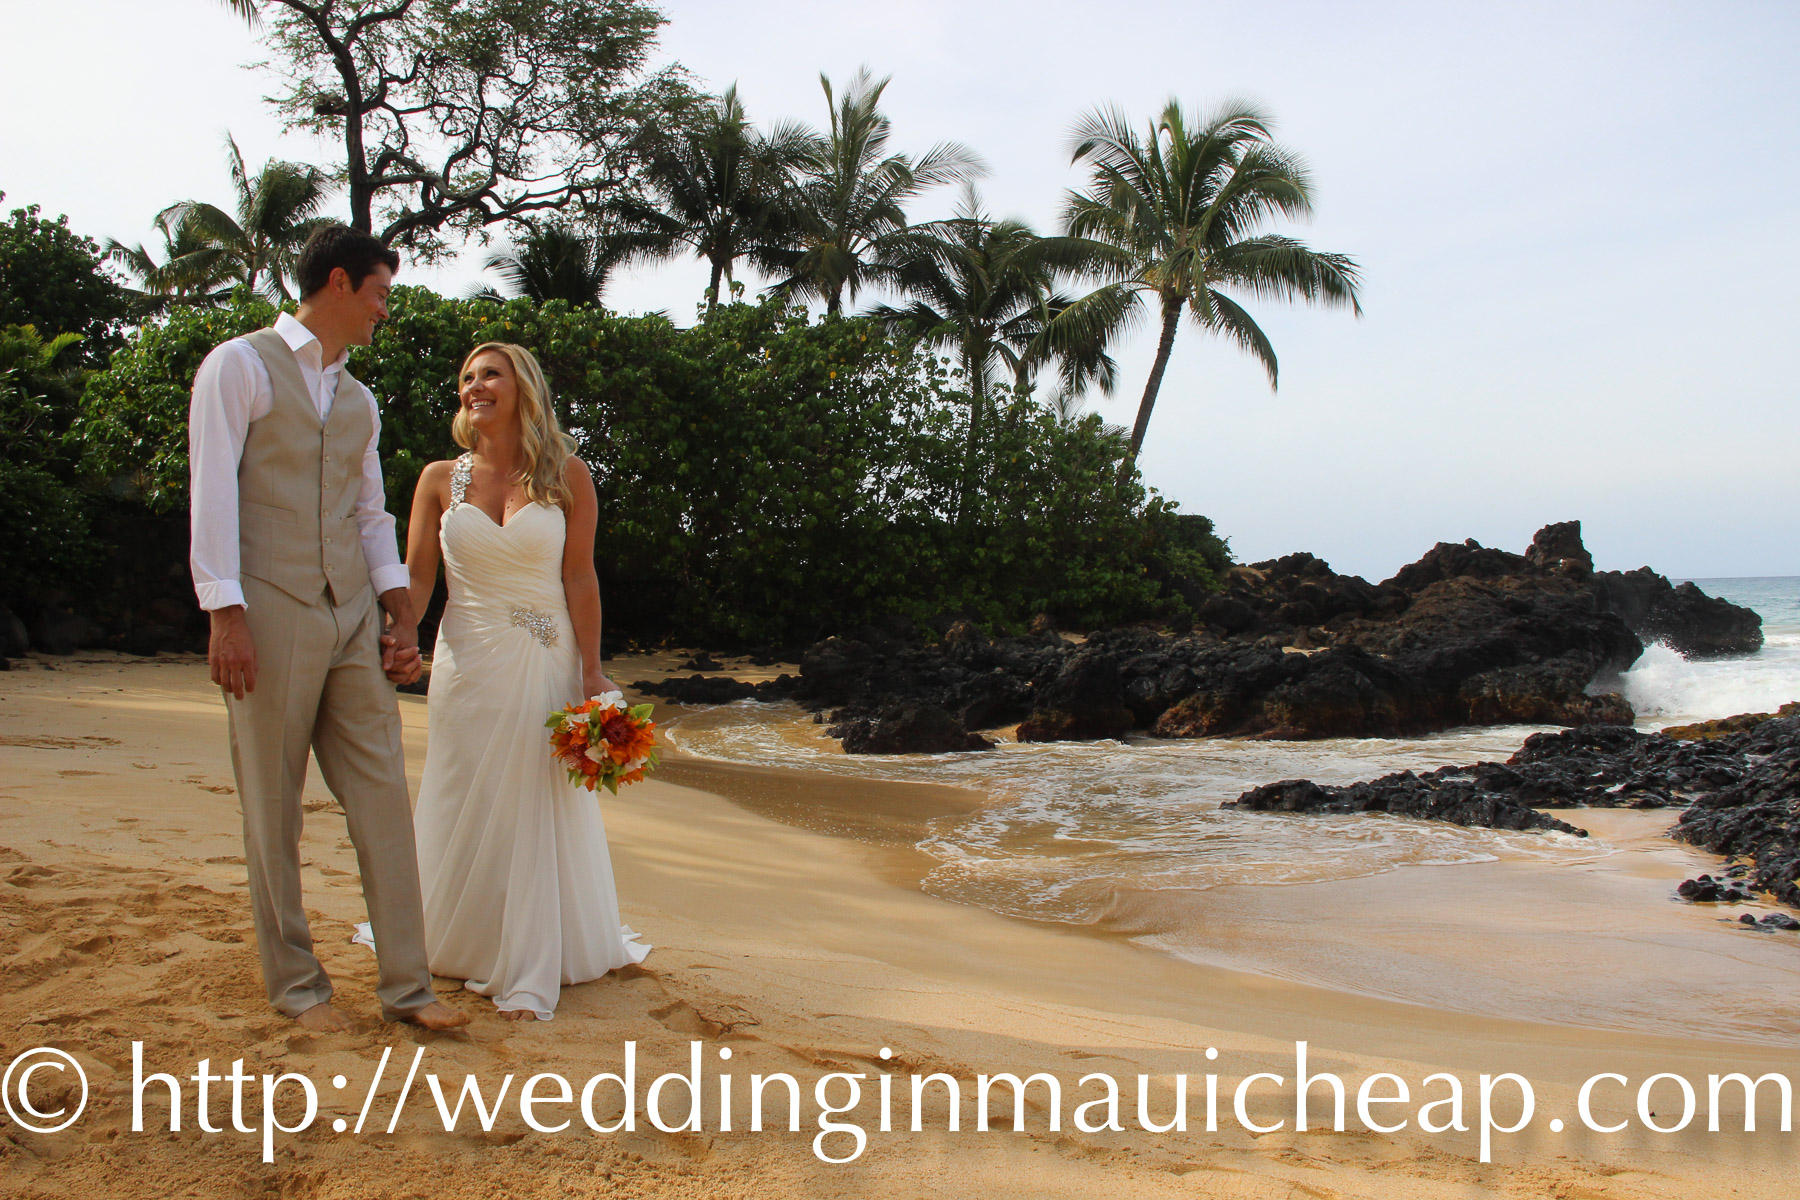 Affordable Barefoot Maui Wedding offers simple Maui wedding packages with photography, Maui ceremony and minister or officiant. Brides tell us our Maui wedding packages are the best Maui wedding or Maui renewal value in Hawaii! Our goal is to create a simple, joy filled Hawaiian themed Wedding or Vow Renewal ceremony that will far exceed your expectations. And because we are family owned and operated, we can offer you an affordable, cheap, Maui weddings and renewals!